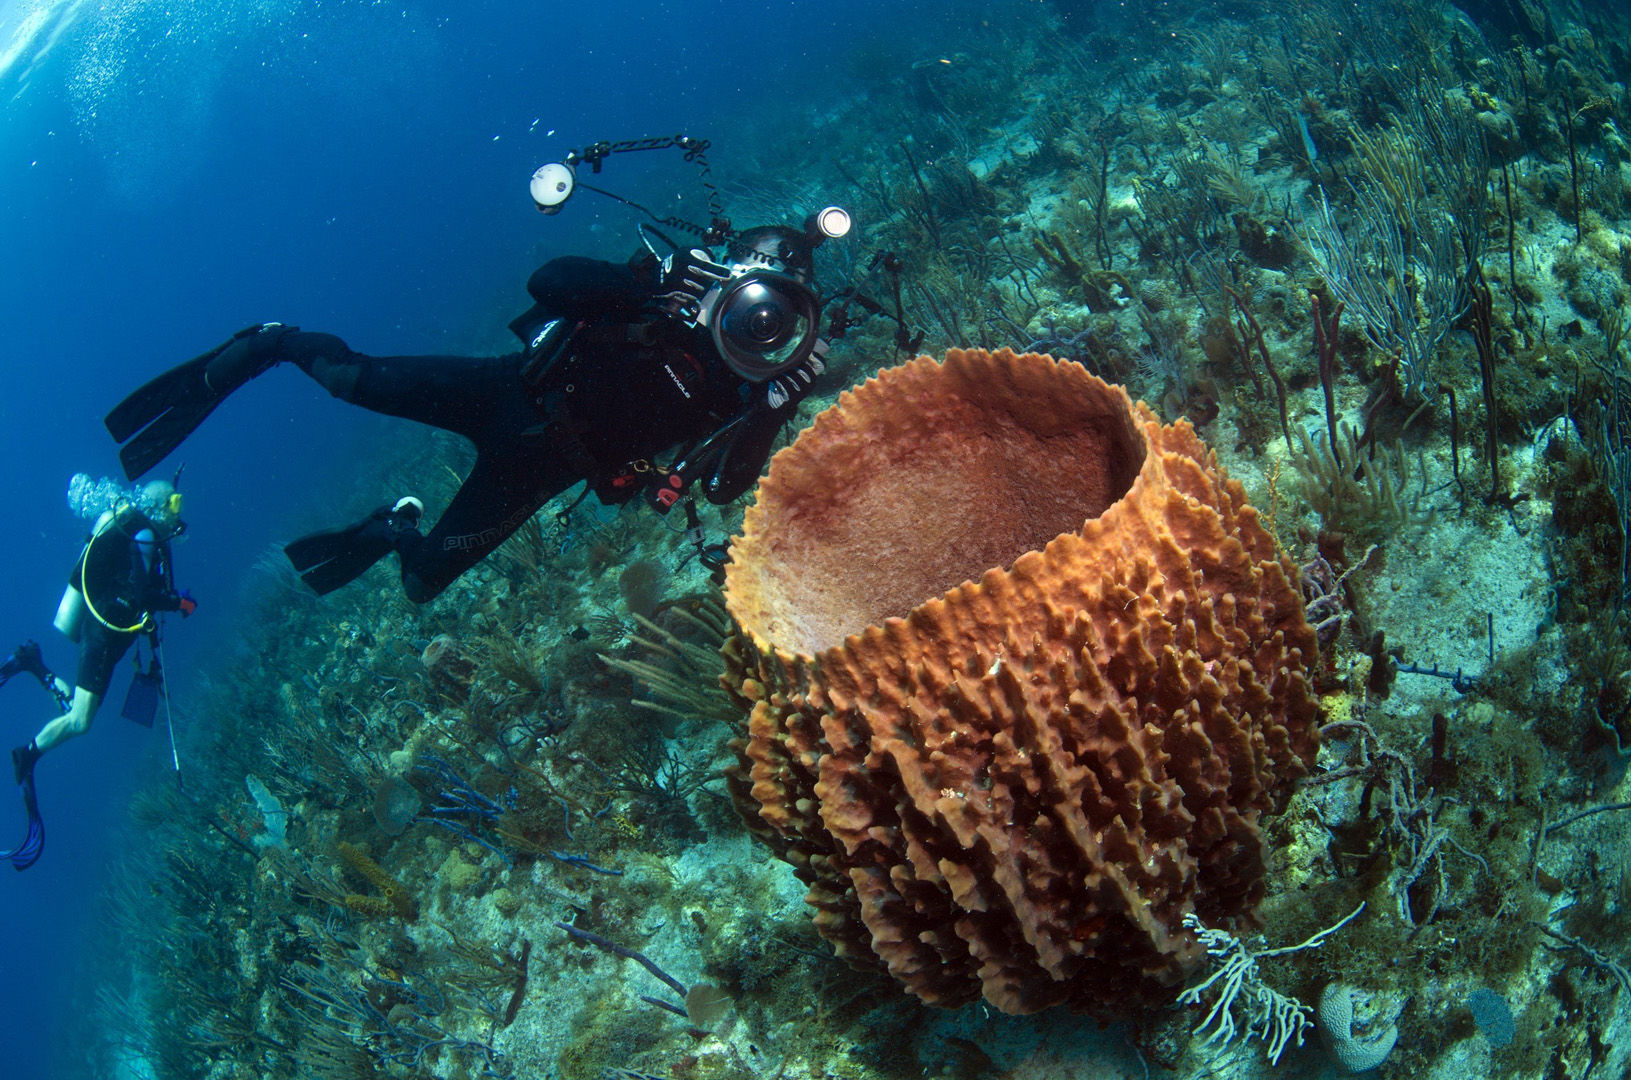 The coral reefs of St. Kitts & Nevis offer the intrepid divers many wondrous creatures like this large barrel sponge